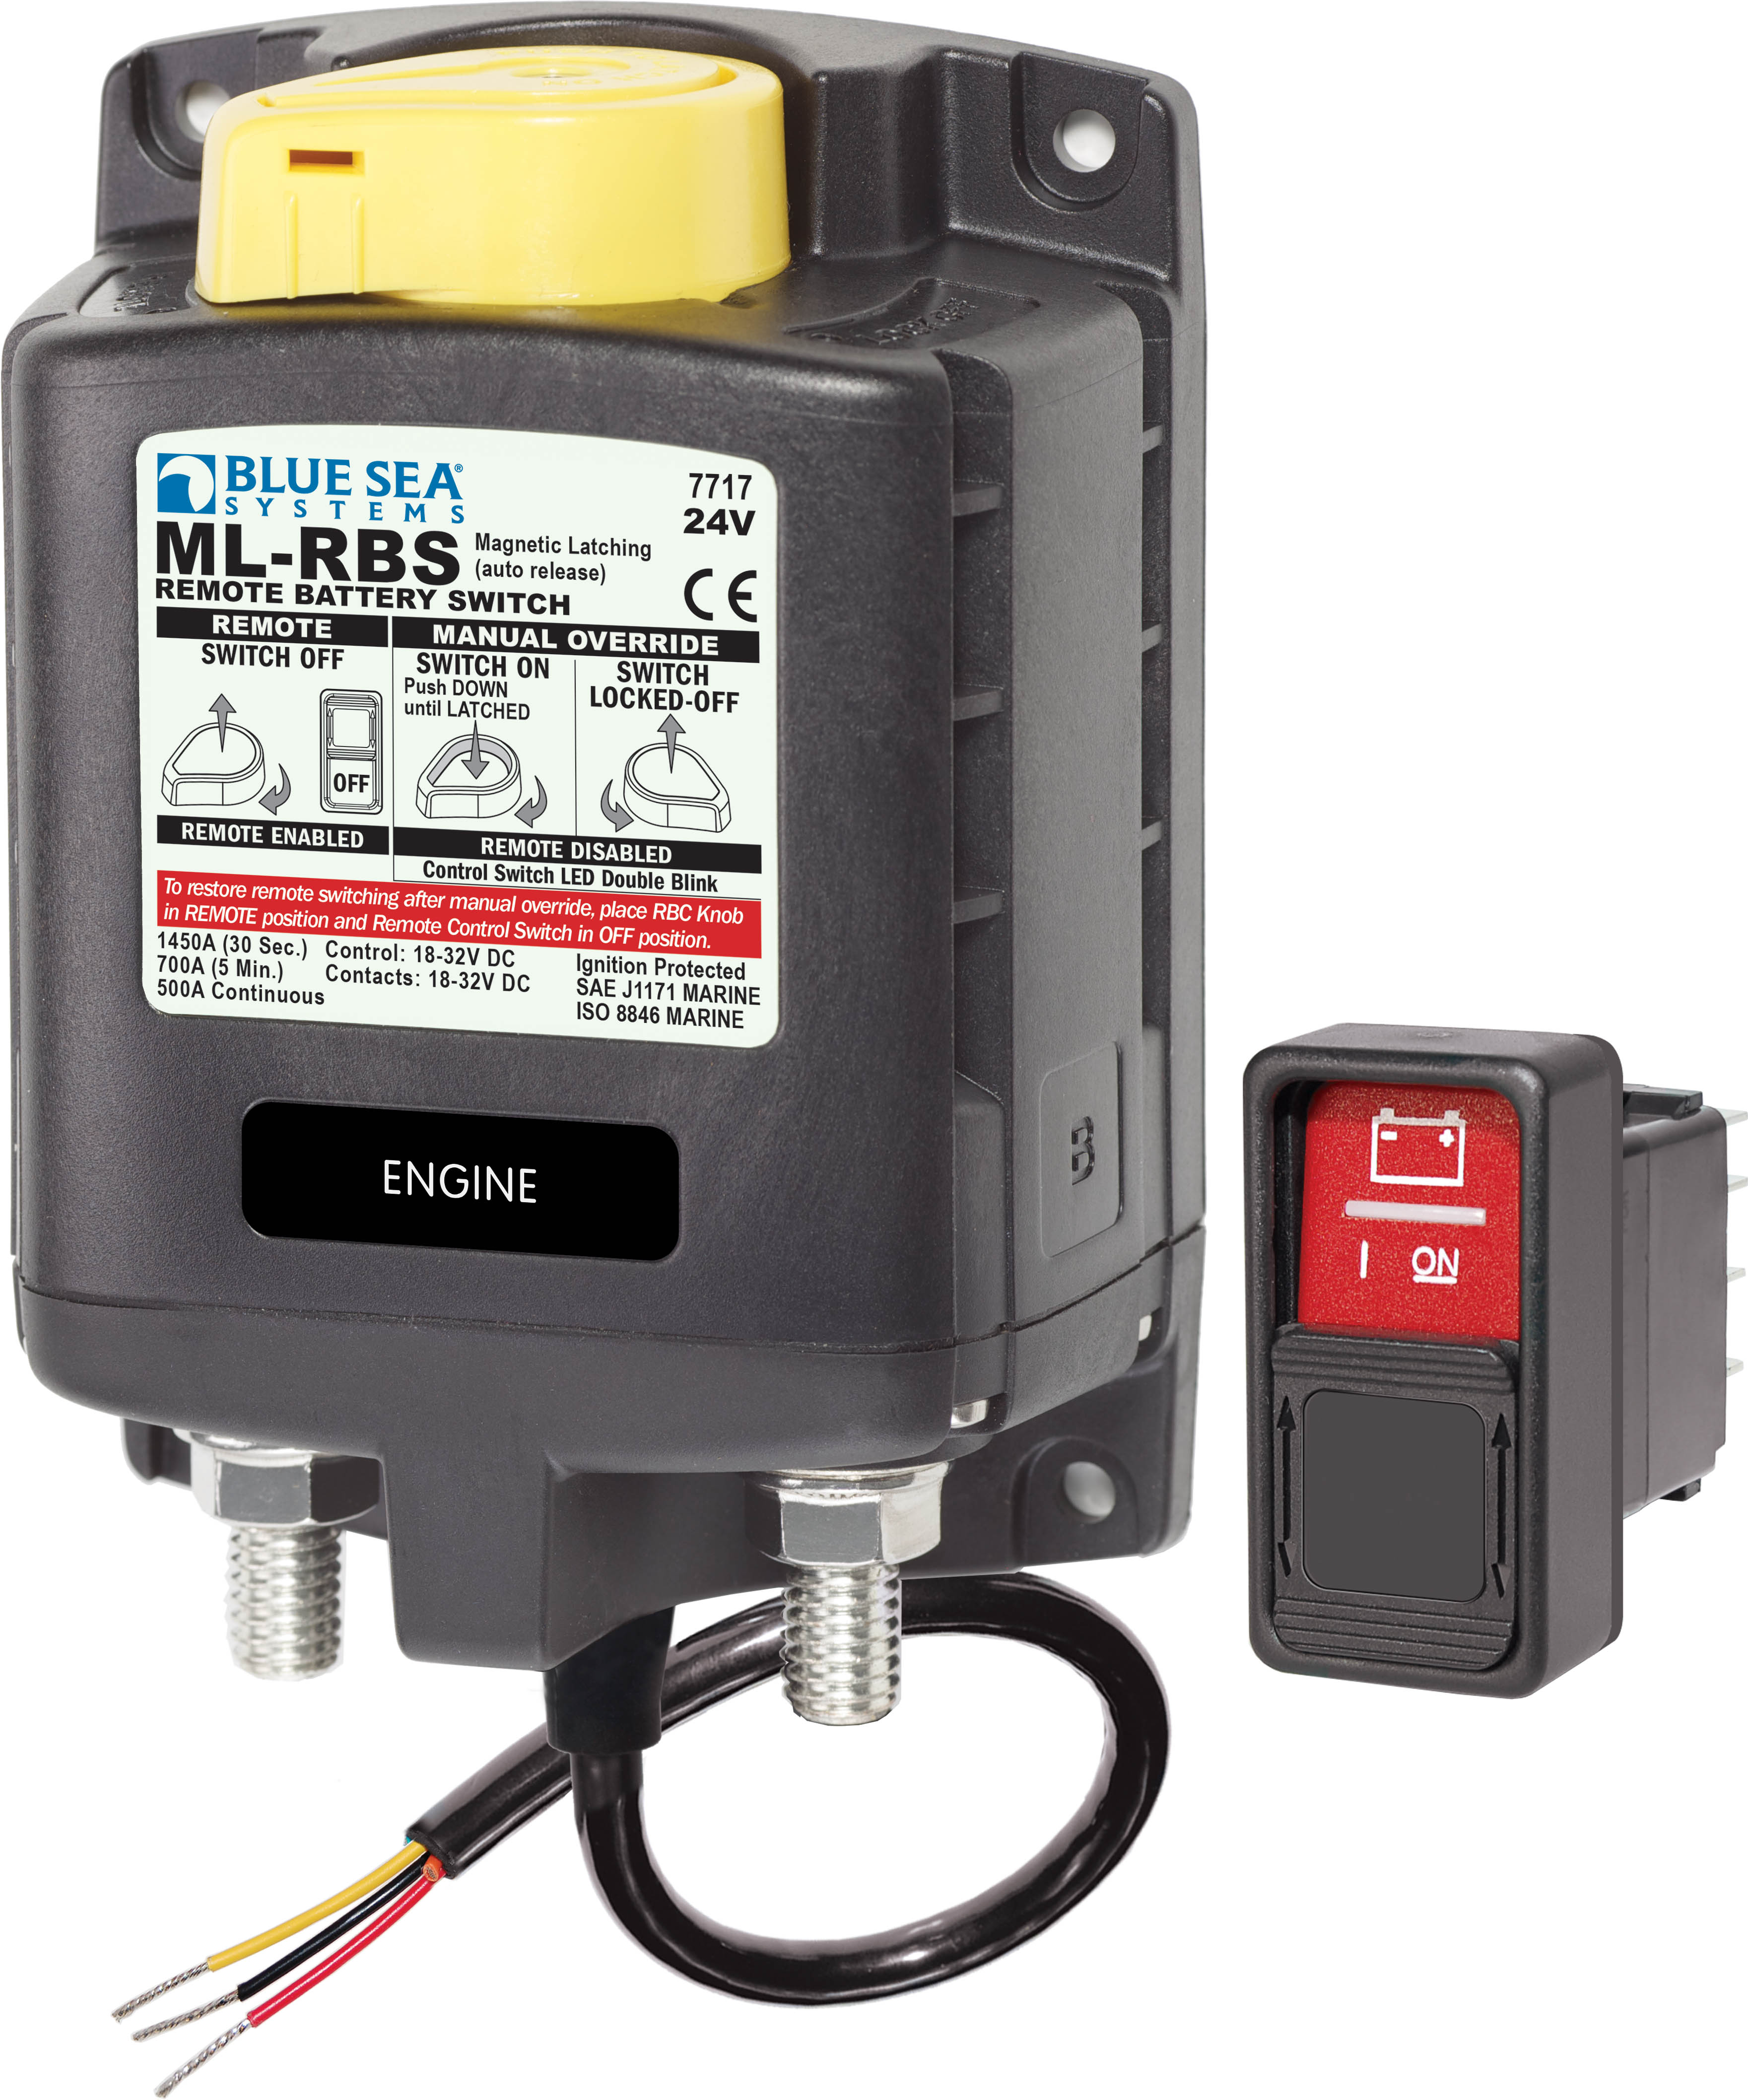 Ml Rbs Remote Battery Switch With Manual Control Auto Release